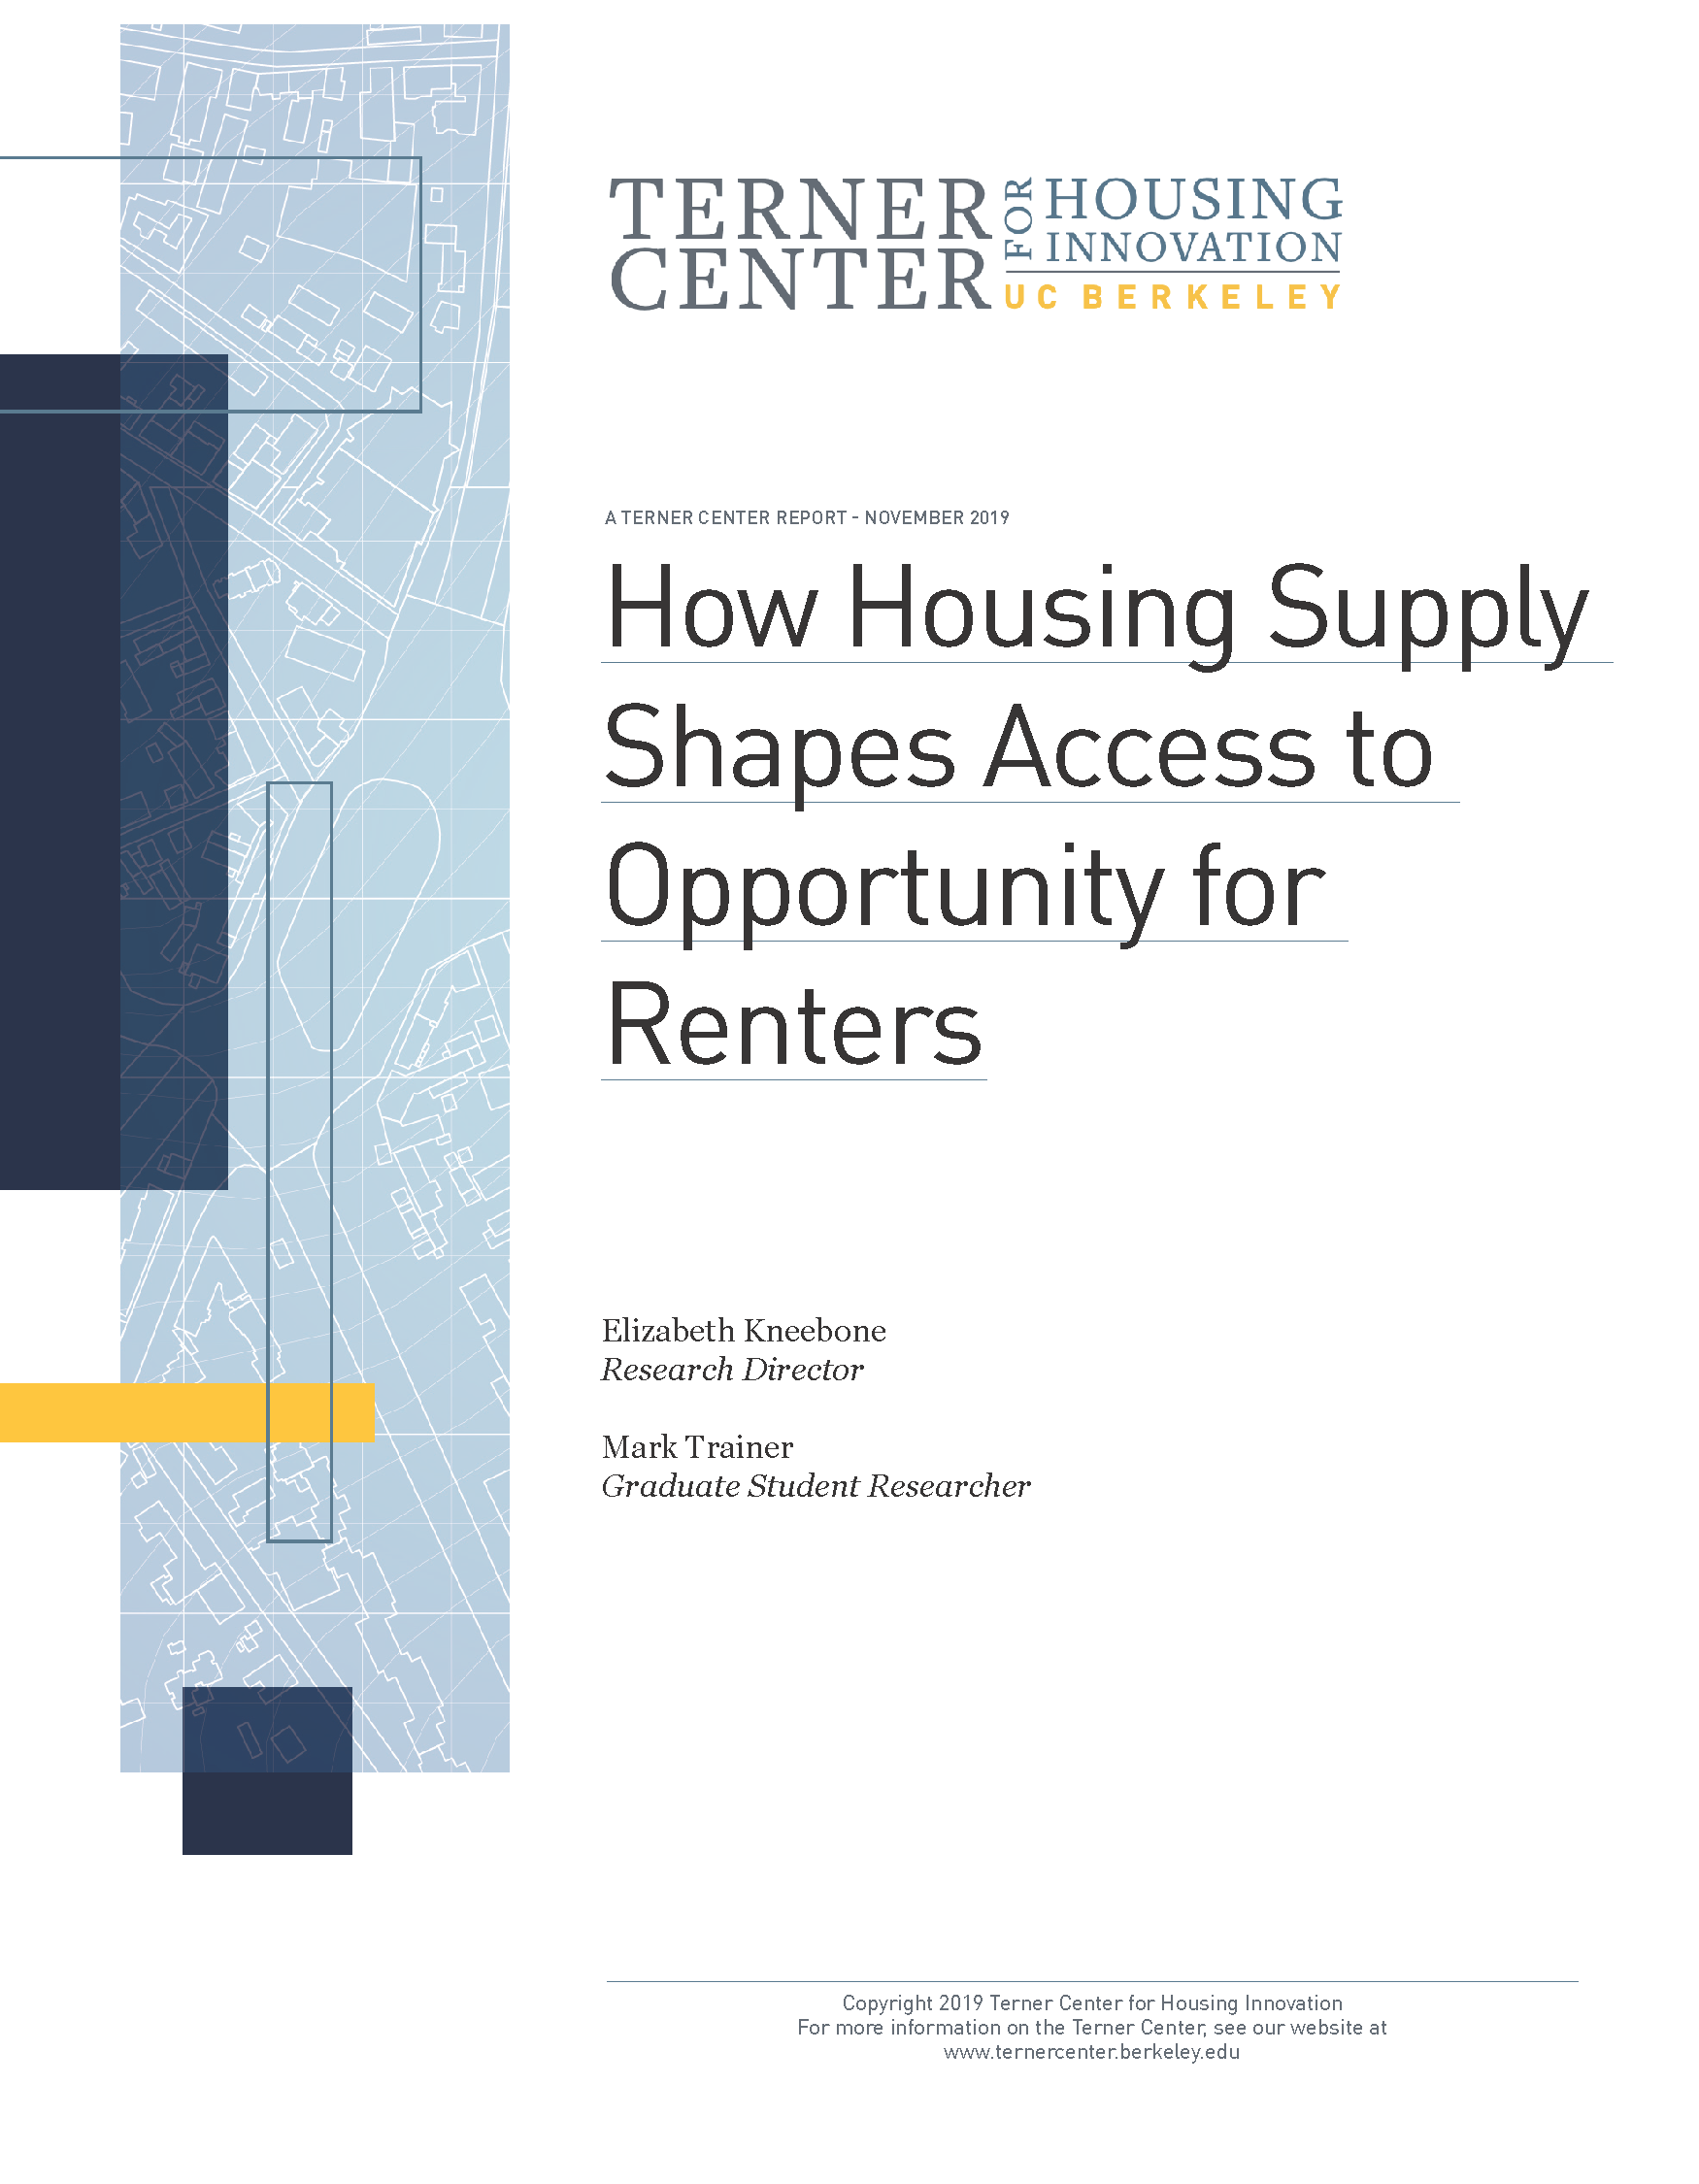 Supply and Access Renters PDF